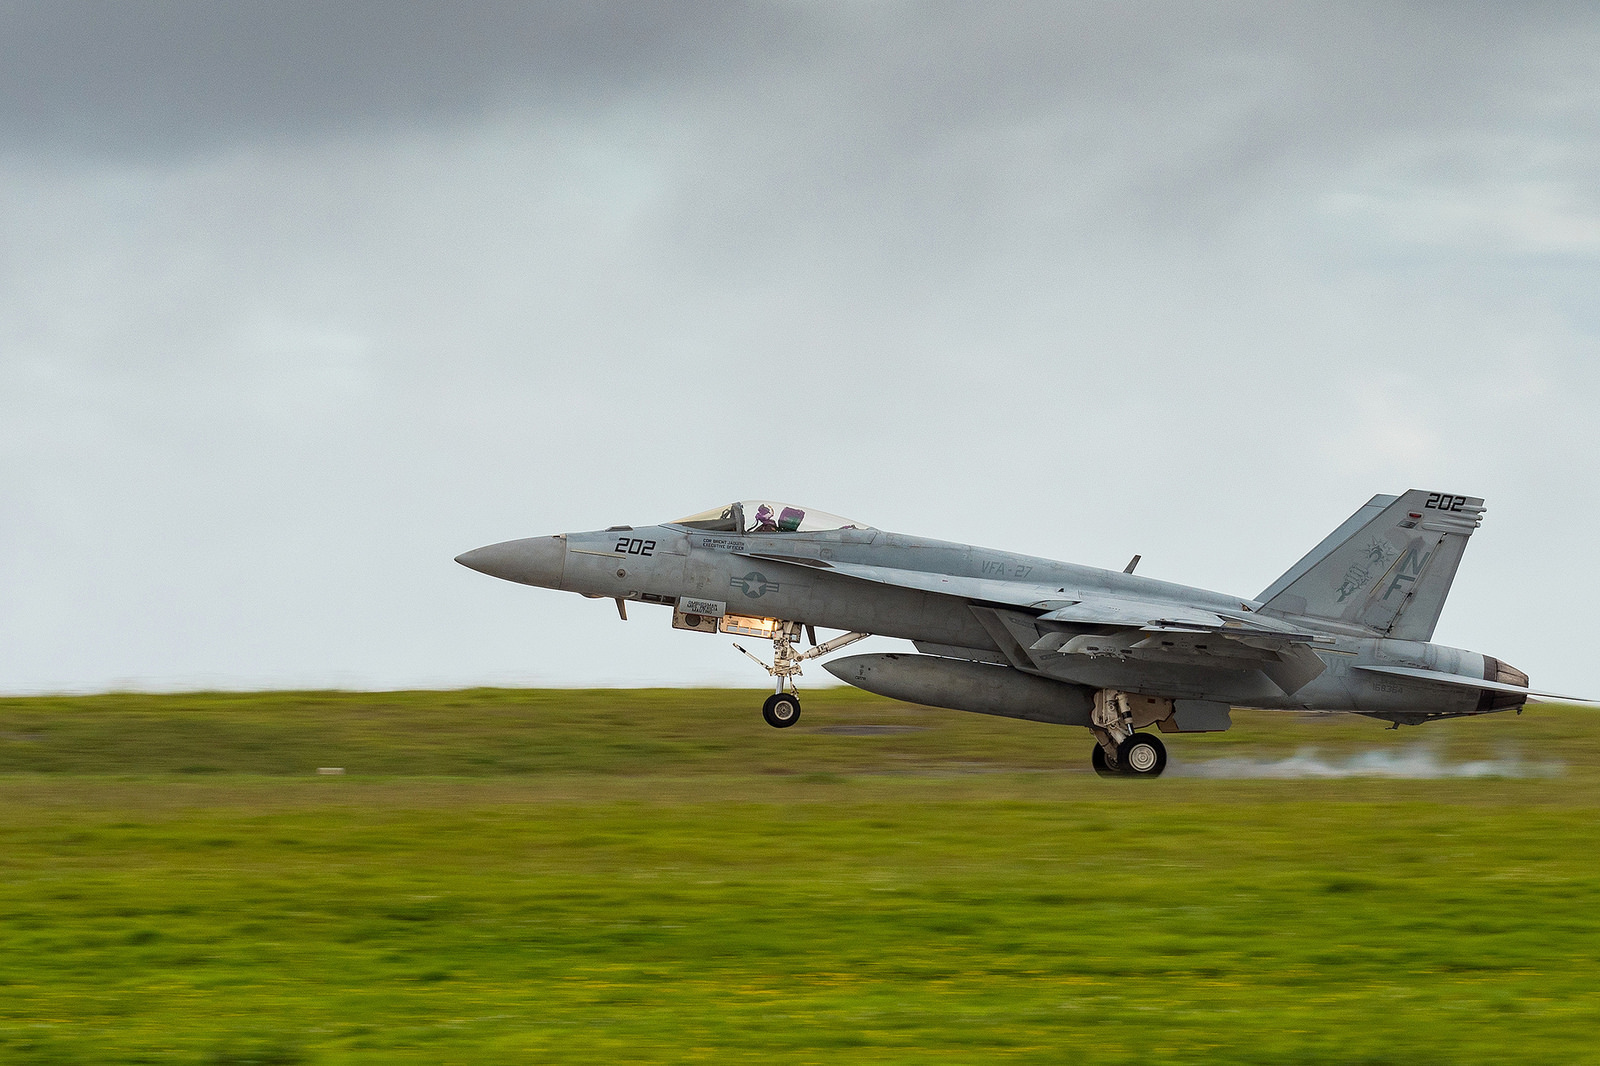 A U.S. Navy F/A-18E Super Hornet returns to Andersen Air Force Base in Guam from a mission on Sept. 19, 2018, in support of exercise Valiant Shield 2018. (Senior Master Sgt. Roger Parsons/Air National Guard)